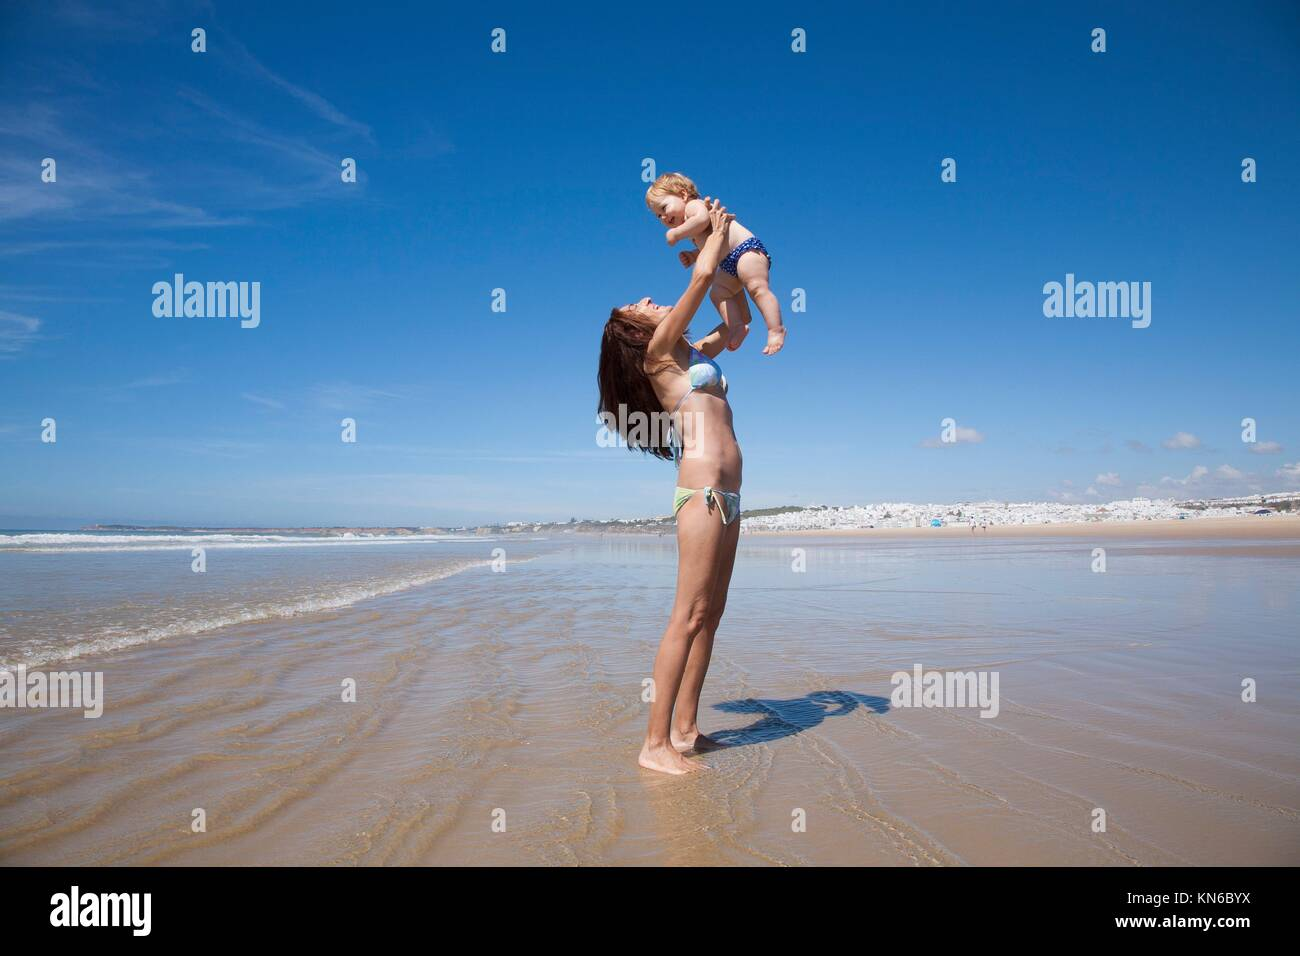 one year baby swimsuit fly in bikini woman mother arms at beach next to Conil Cadiz Spain. - Stock Image